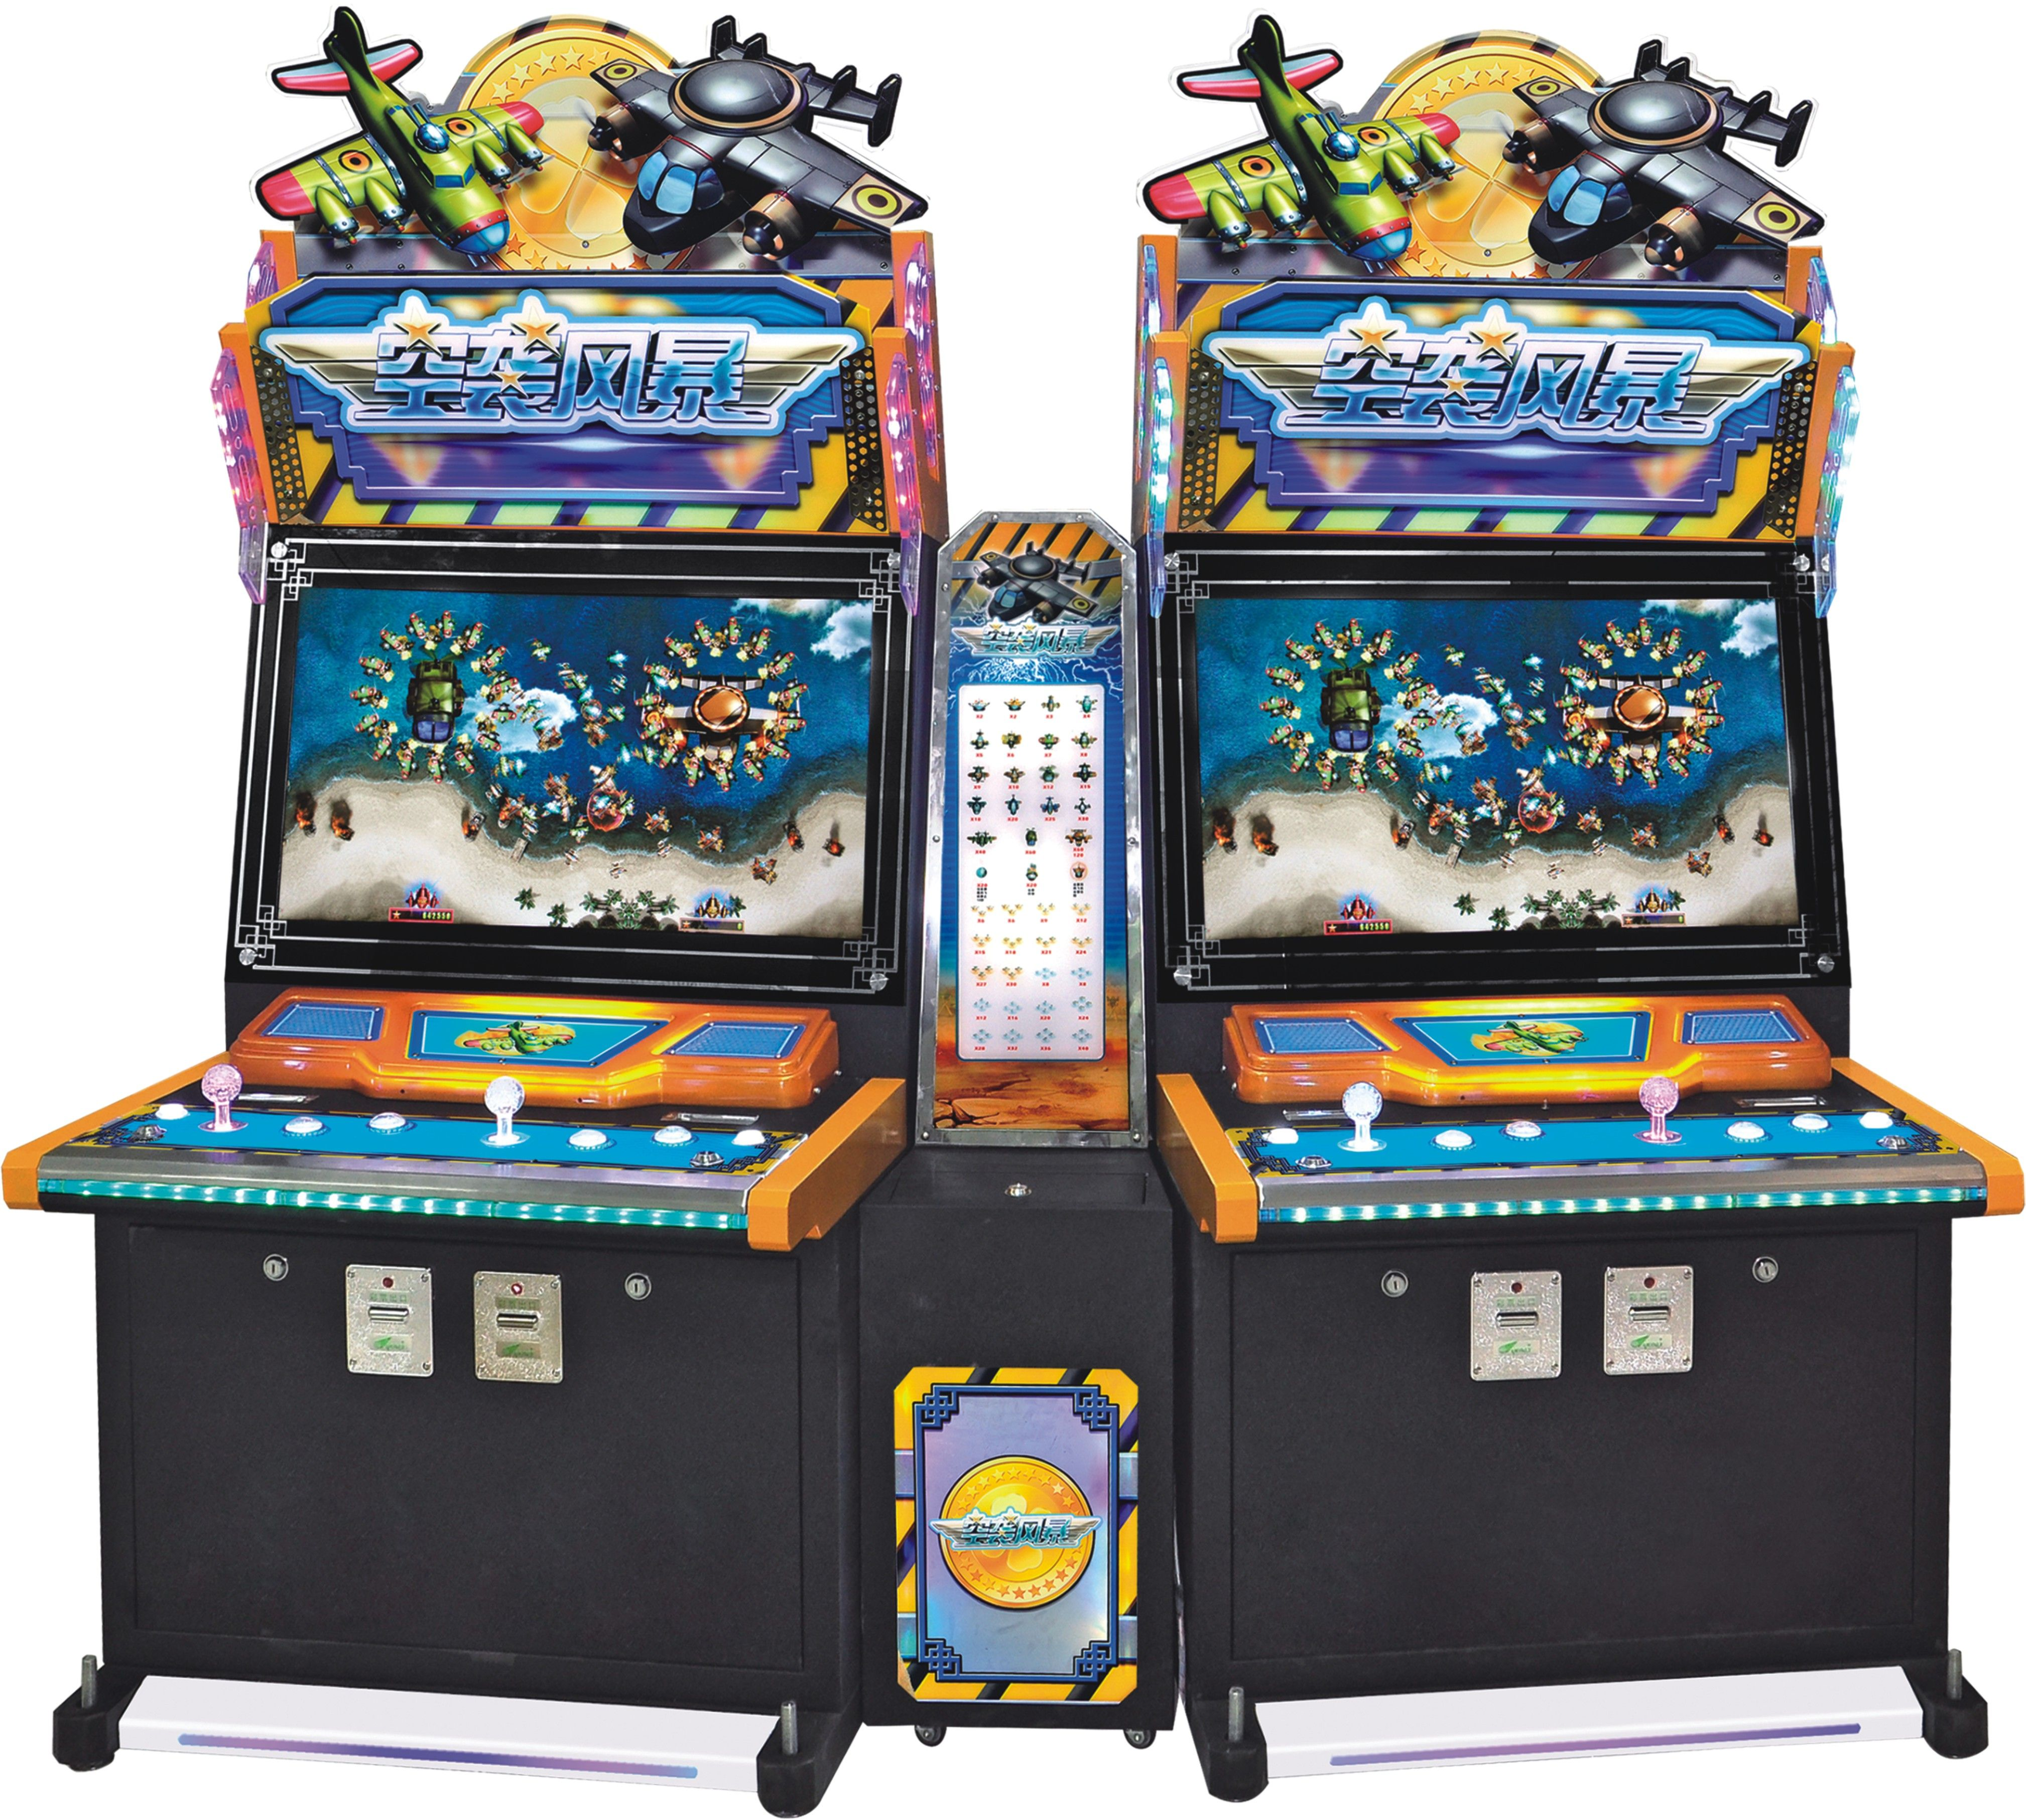 We are a fish game / skill game software developer and